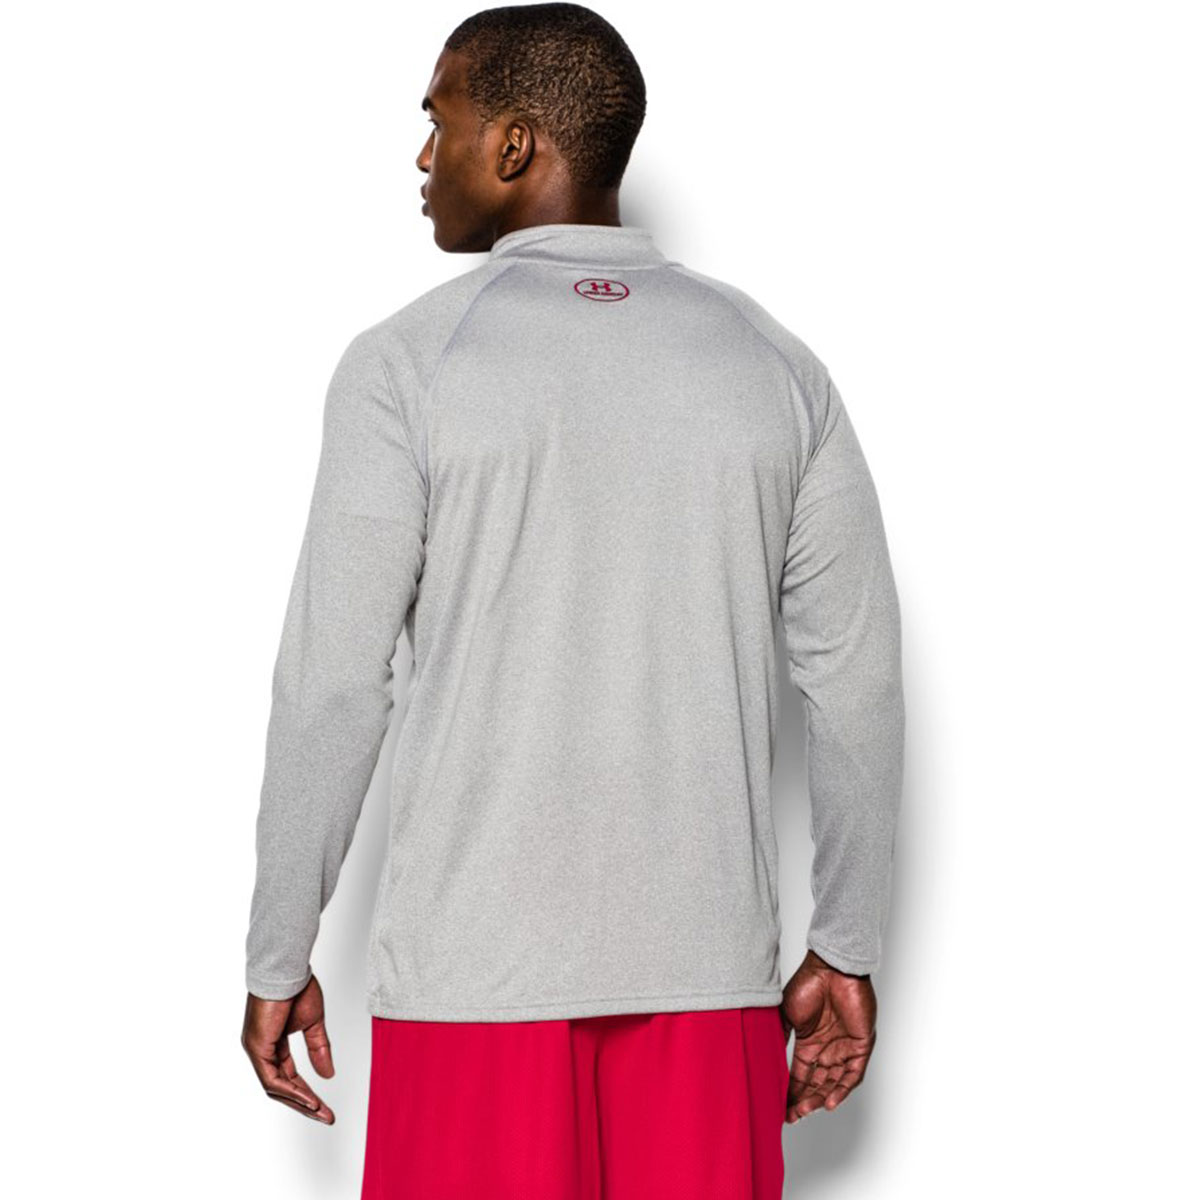 Under-Armour-Mens-UA-Tech-1-4-Zip-Long-Sleeve-Top-Workout-Layer-27-OFF-RRP thumbnail 89